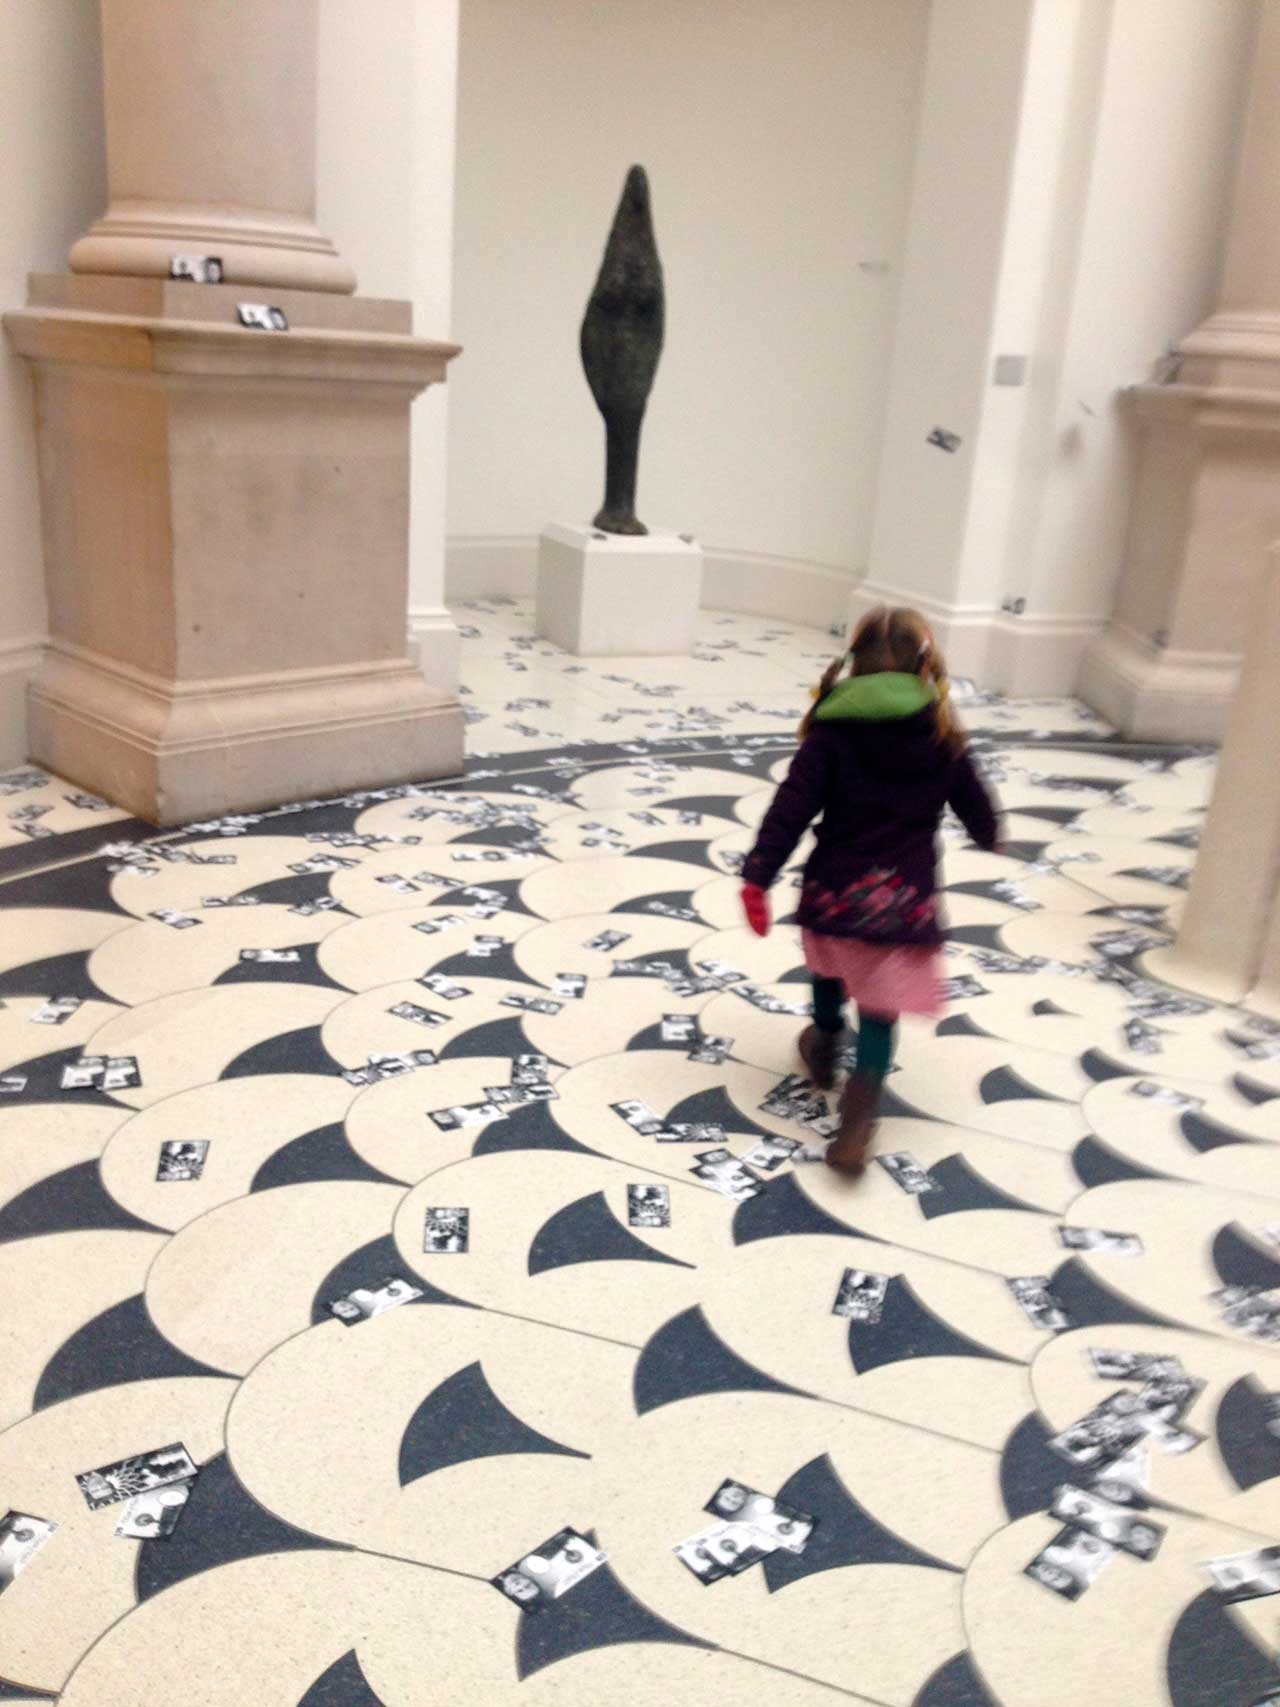 An image from Liberate Tate's money drop protest last February in the Tate Britain Liberate Tate members dropping fake money at Tate Britain (photo by Cassie Packard for Hyperallergic)